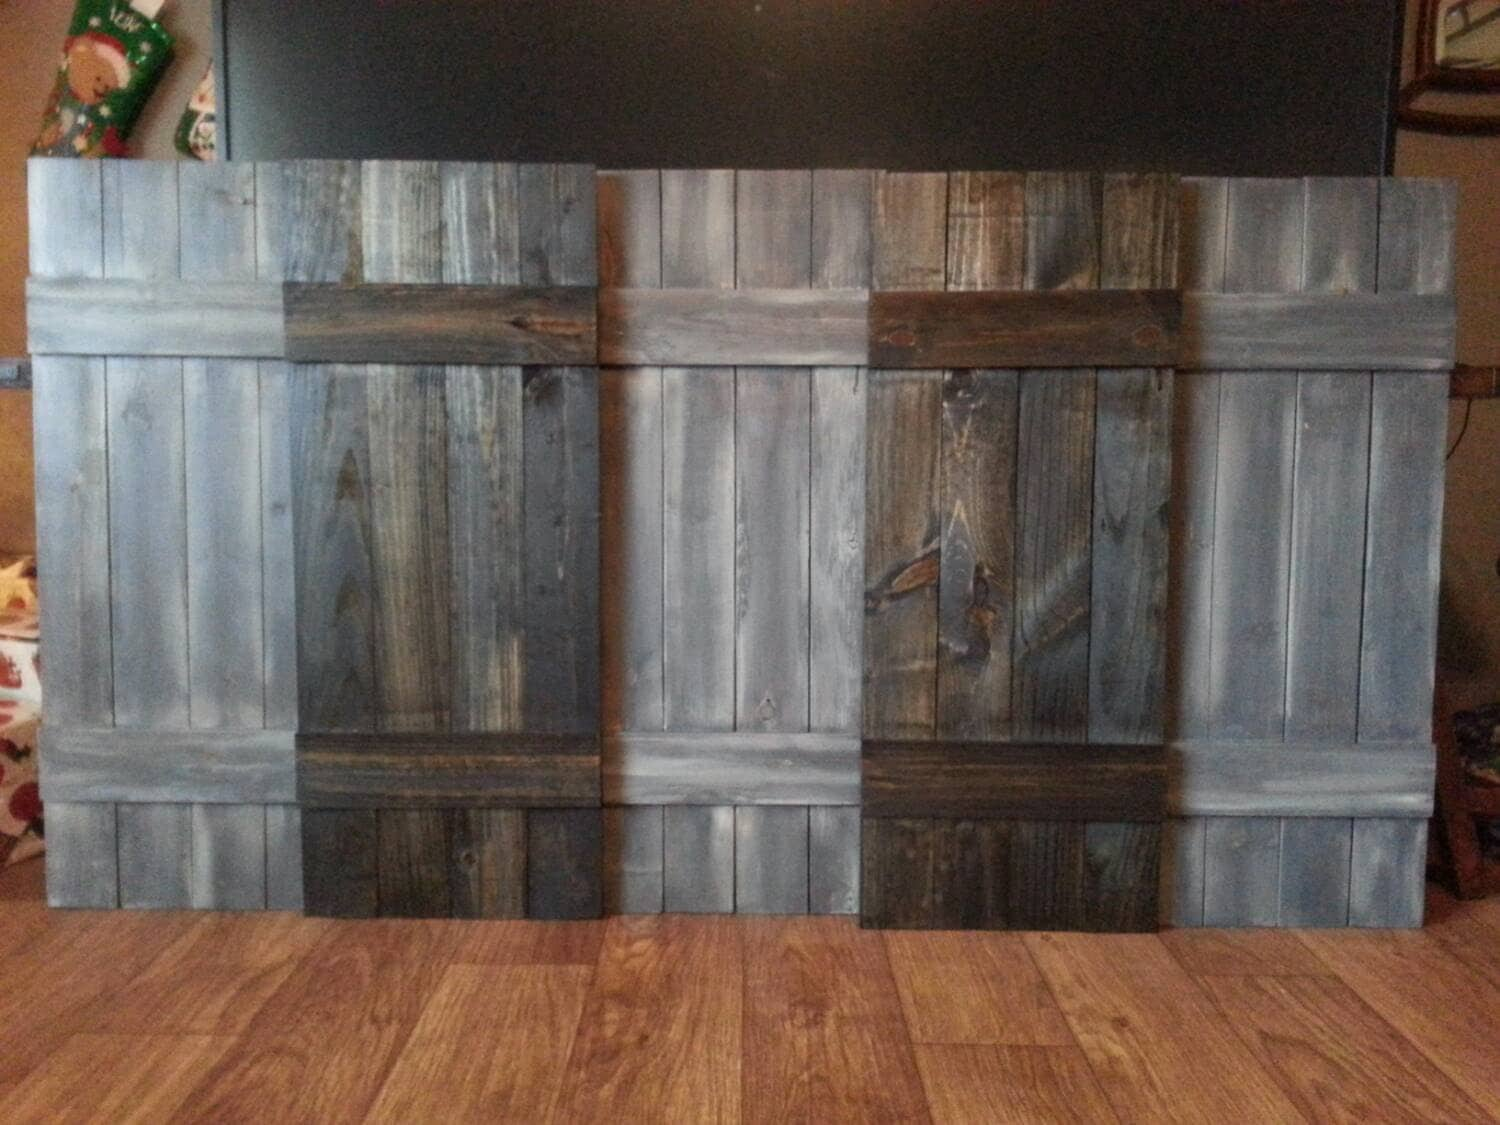 KING Headboard Wood Shutter Set Rustic Wooden Headboard